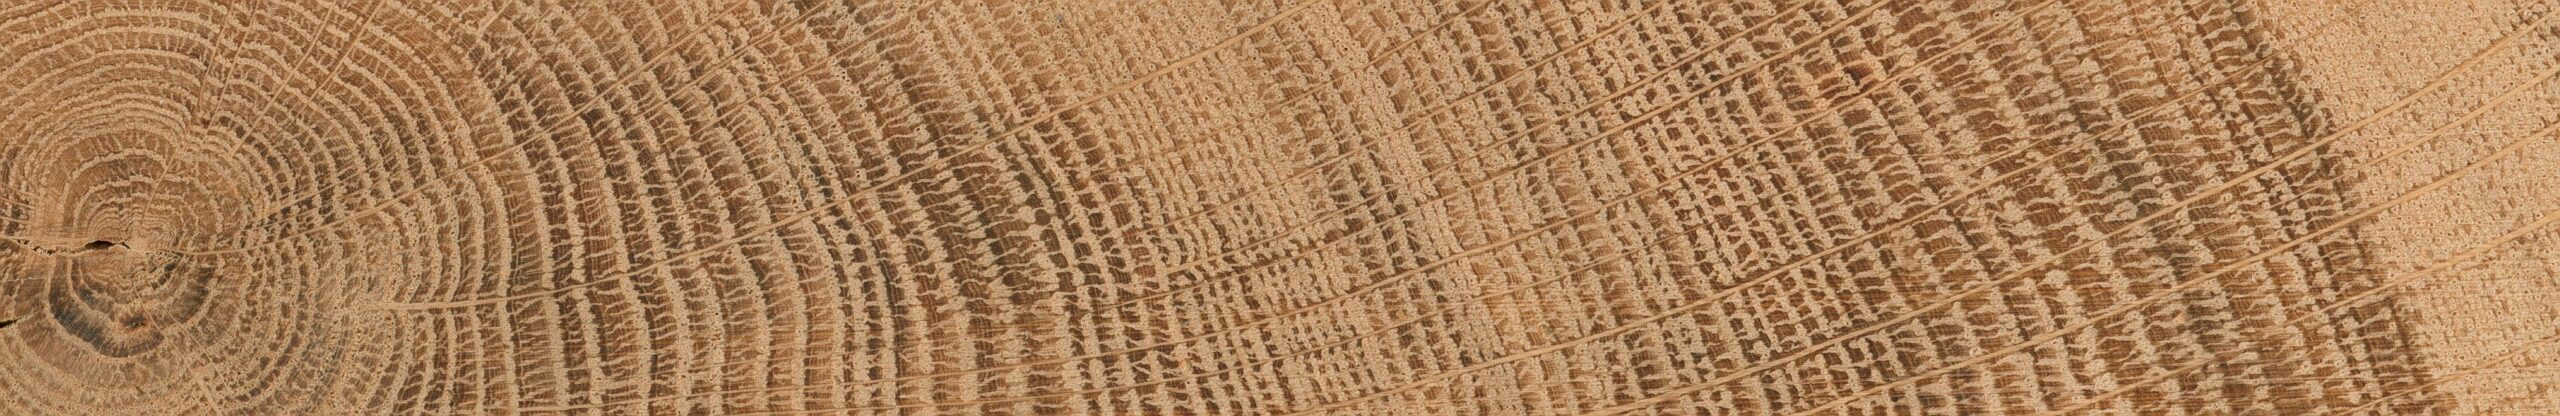 close up of tree rings